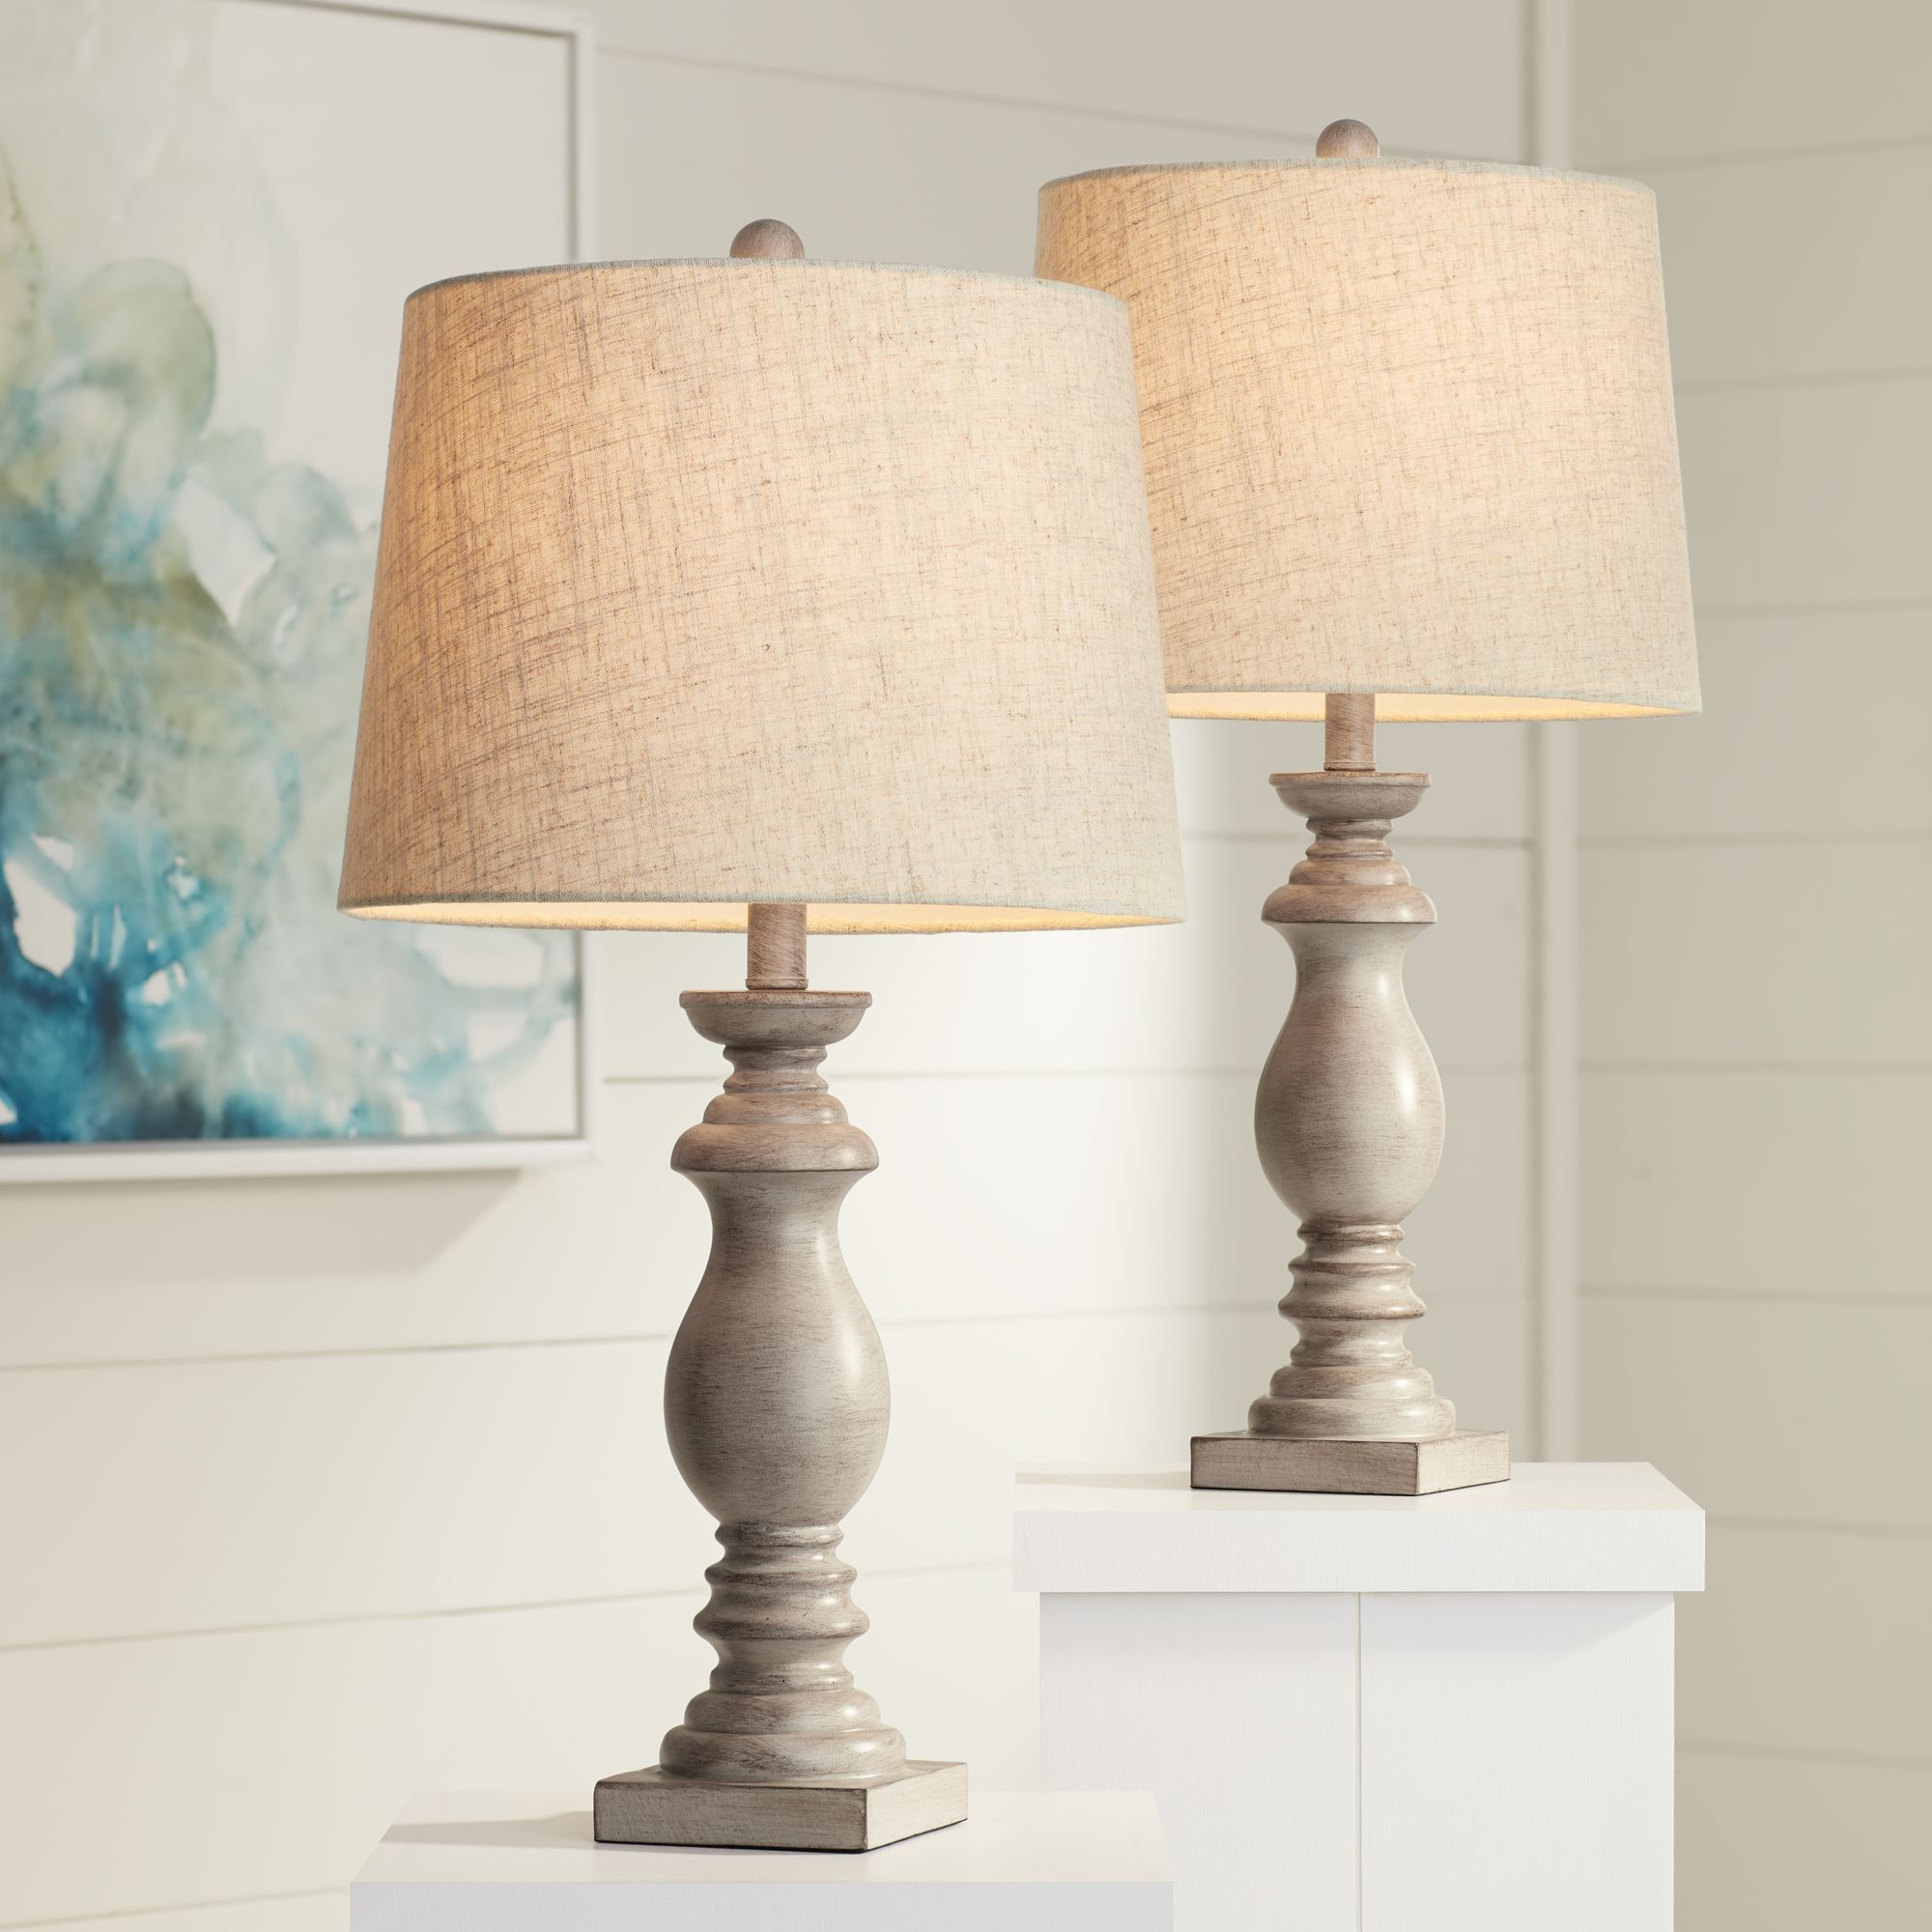 Regency Hill Traditional Table Lamps Set Of 2 Beige Washed Fabric Tapered Drum Shade For Living Room Bedroom Nightstand Family Walmart Com Farmhouse Table Lamps Traditional Table Lamps Bedroom Night Stands #table #lamp #sets #living #room